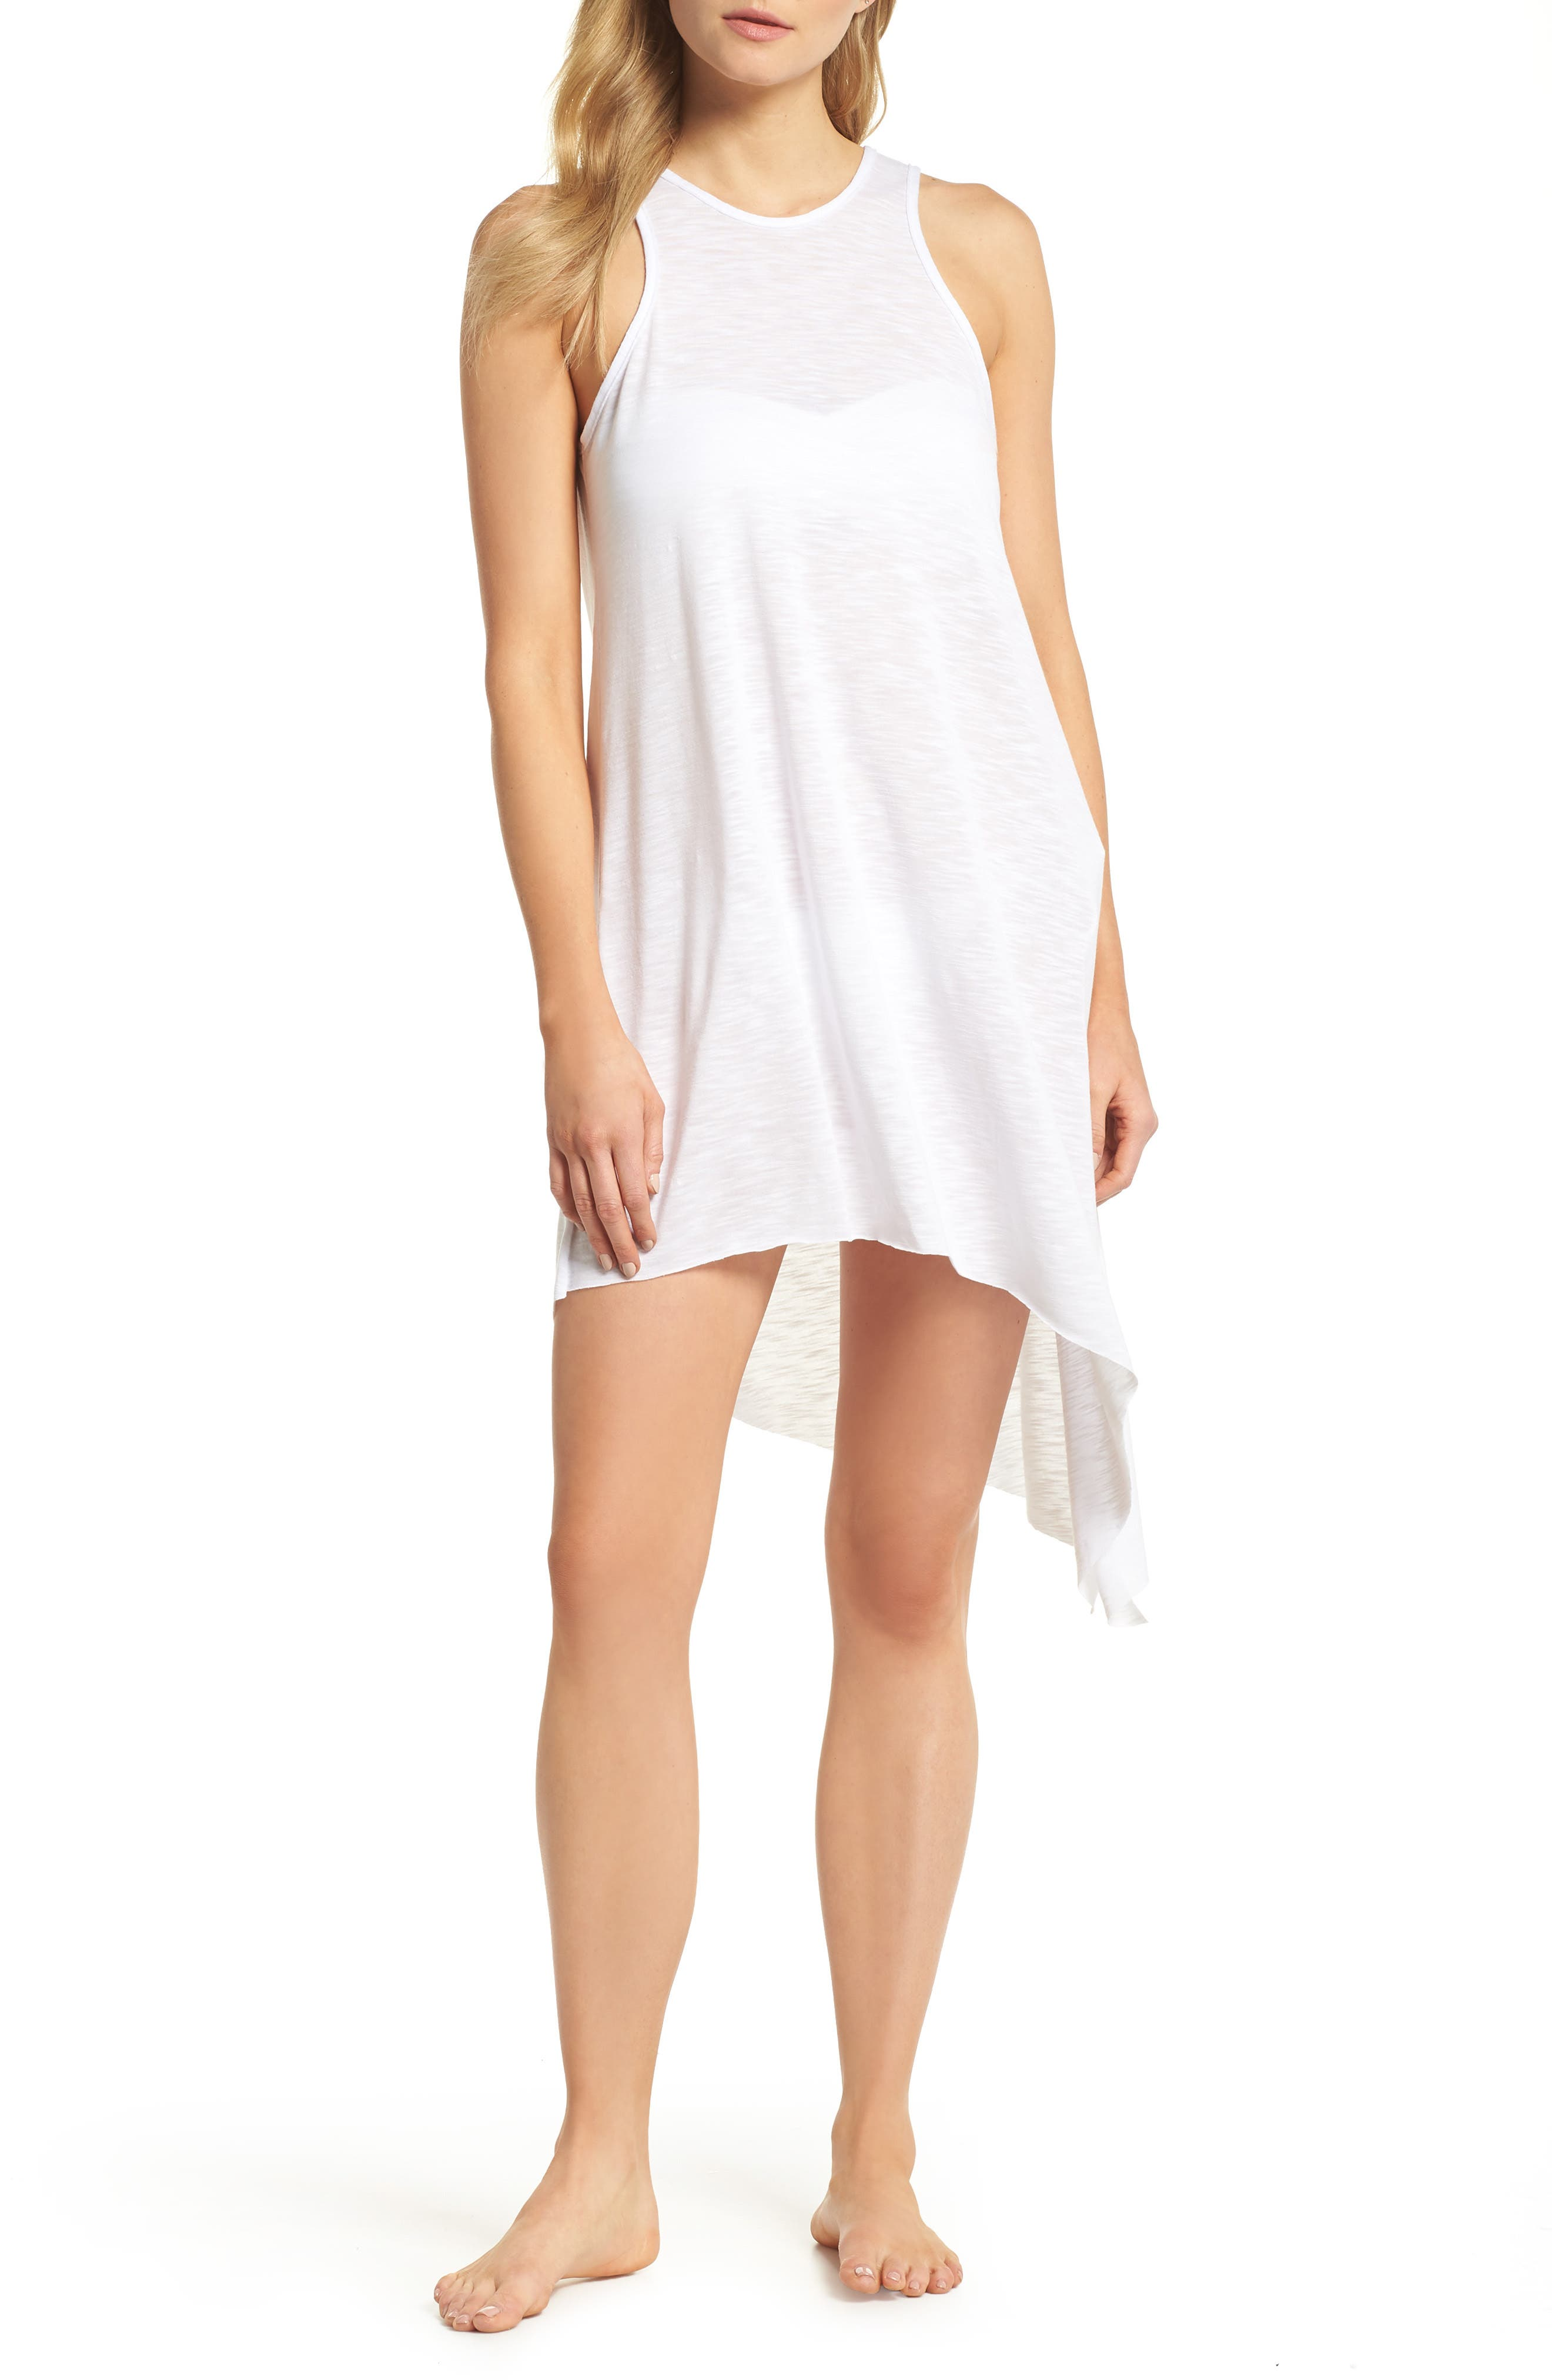 Breezy Basics Cover-Up Dress,                         Main,                         color, White